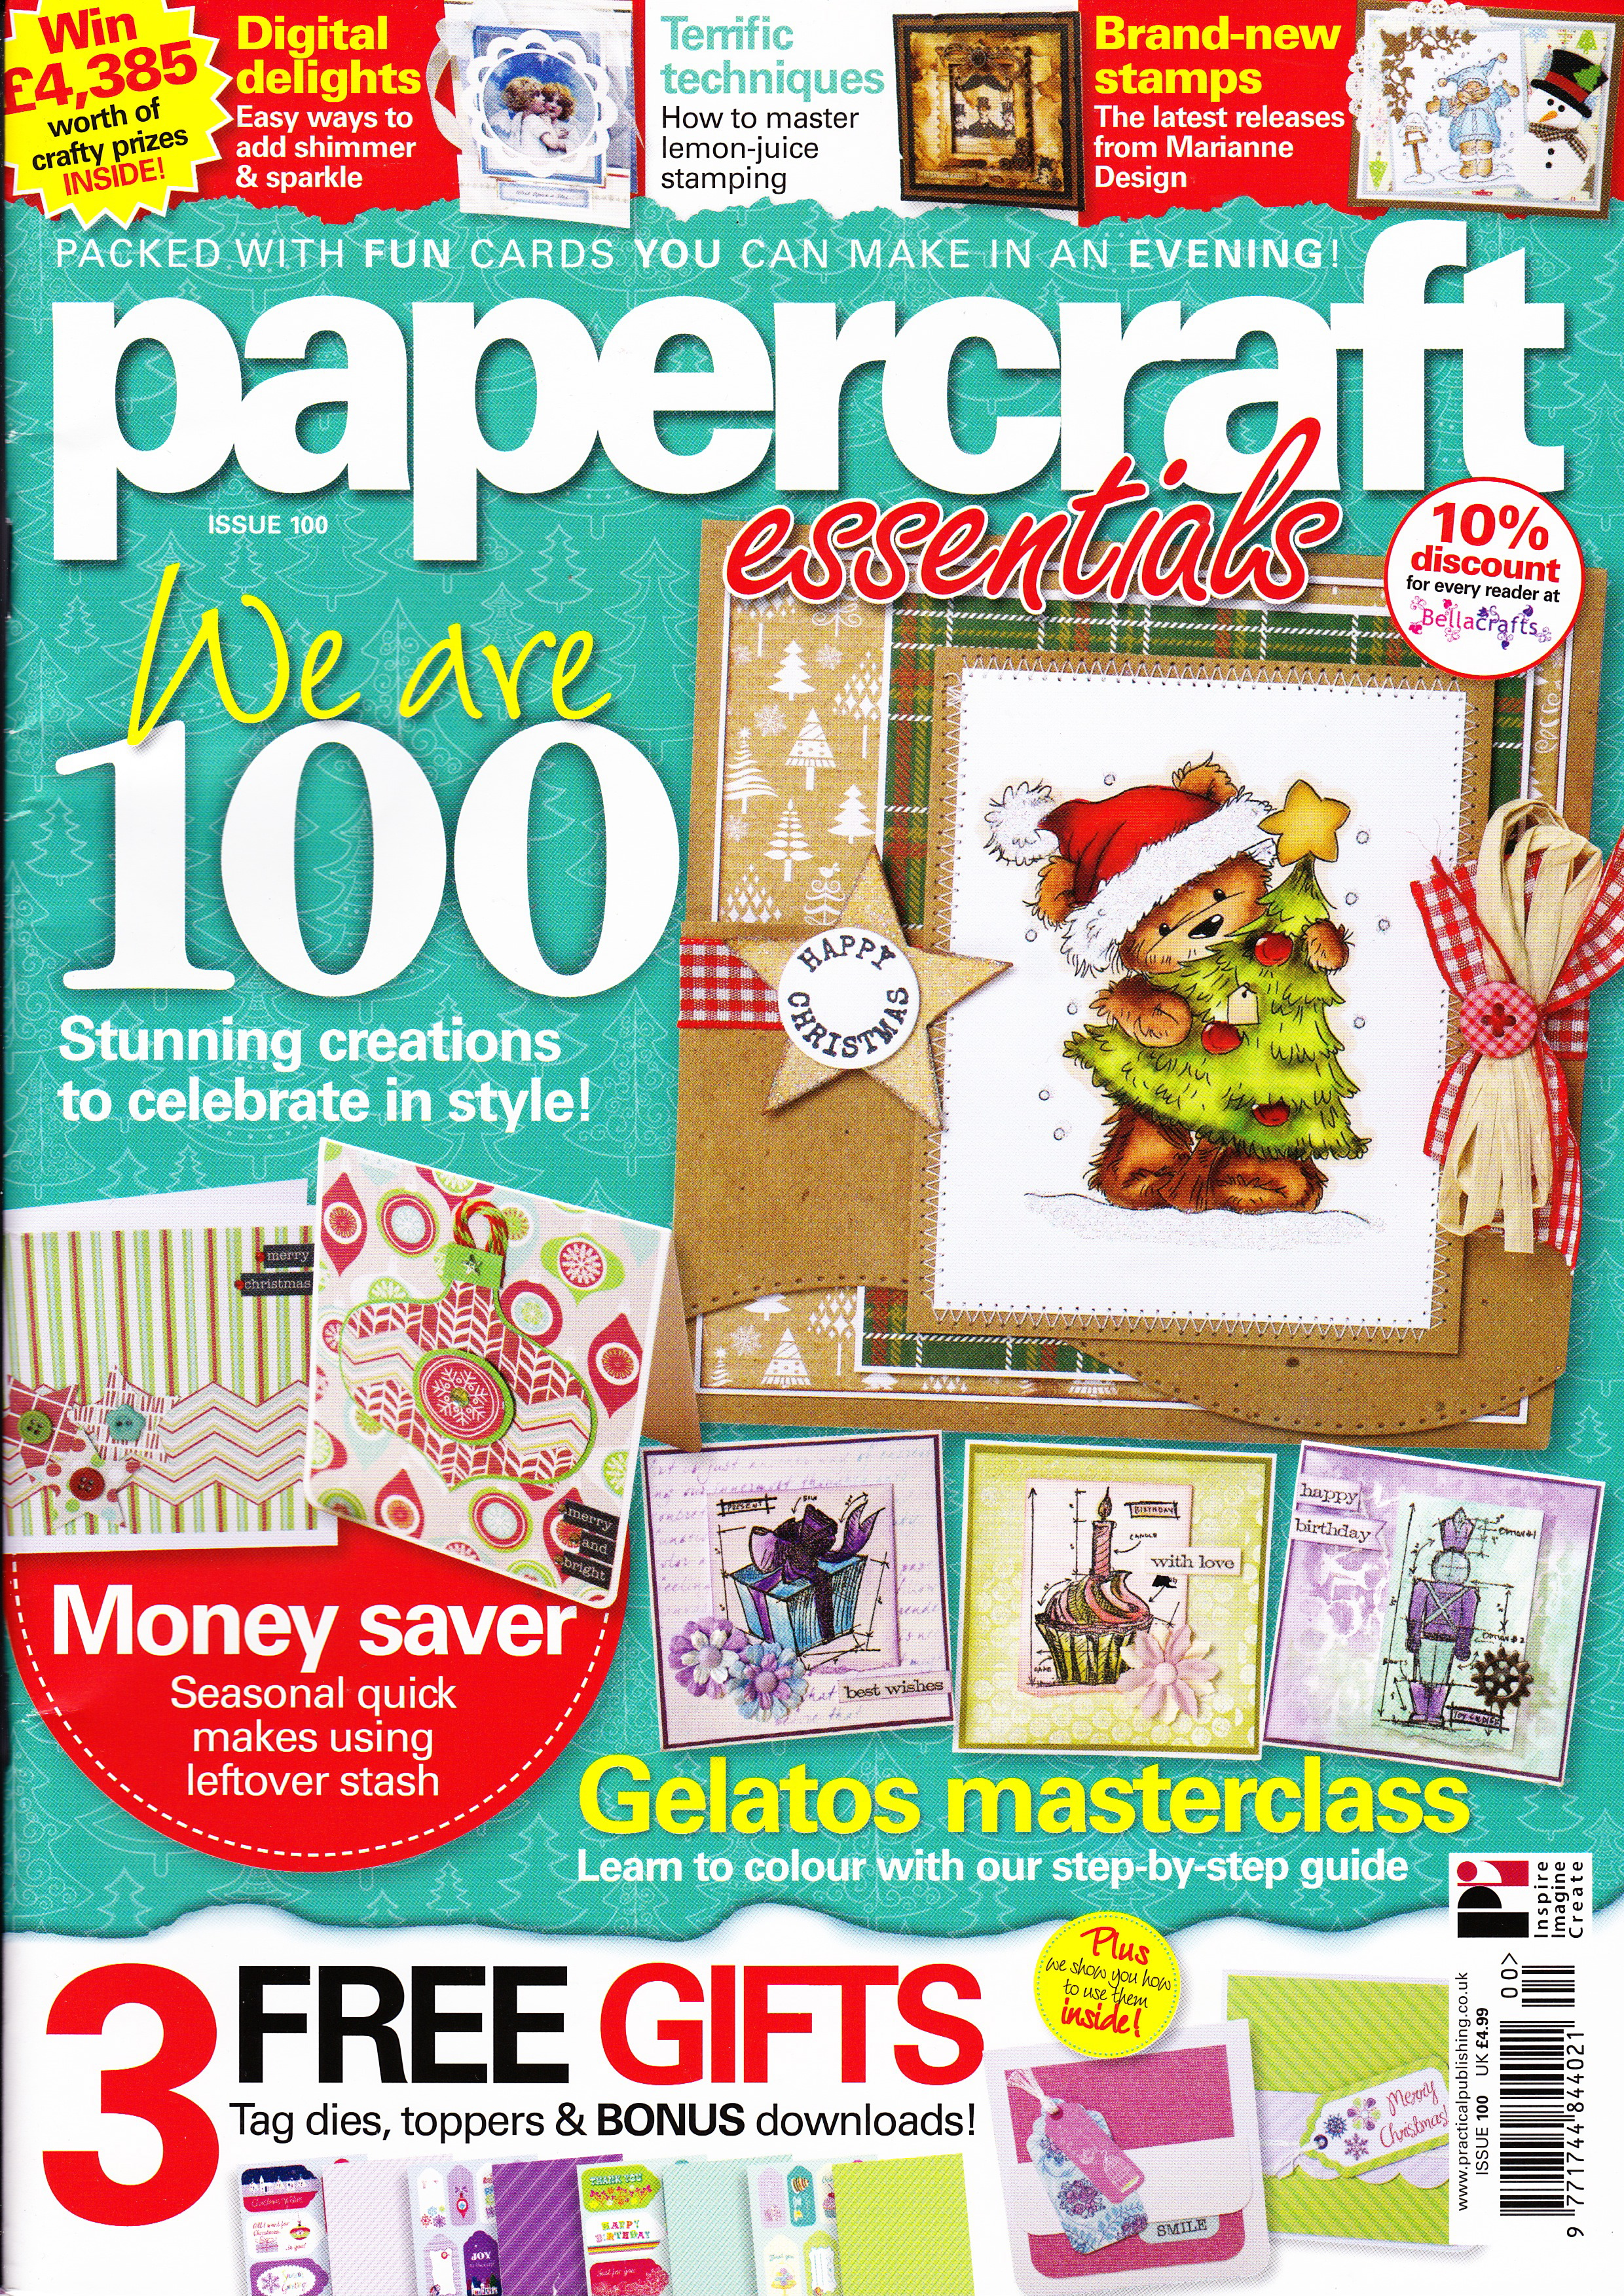 Papercraft Essentials magazine – Issue 100